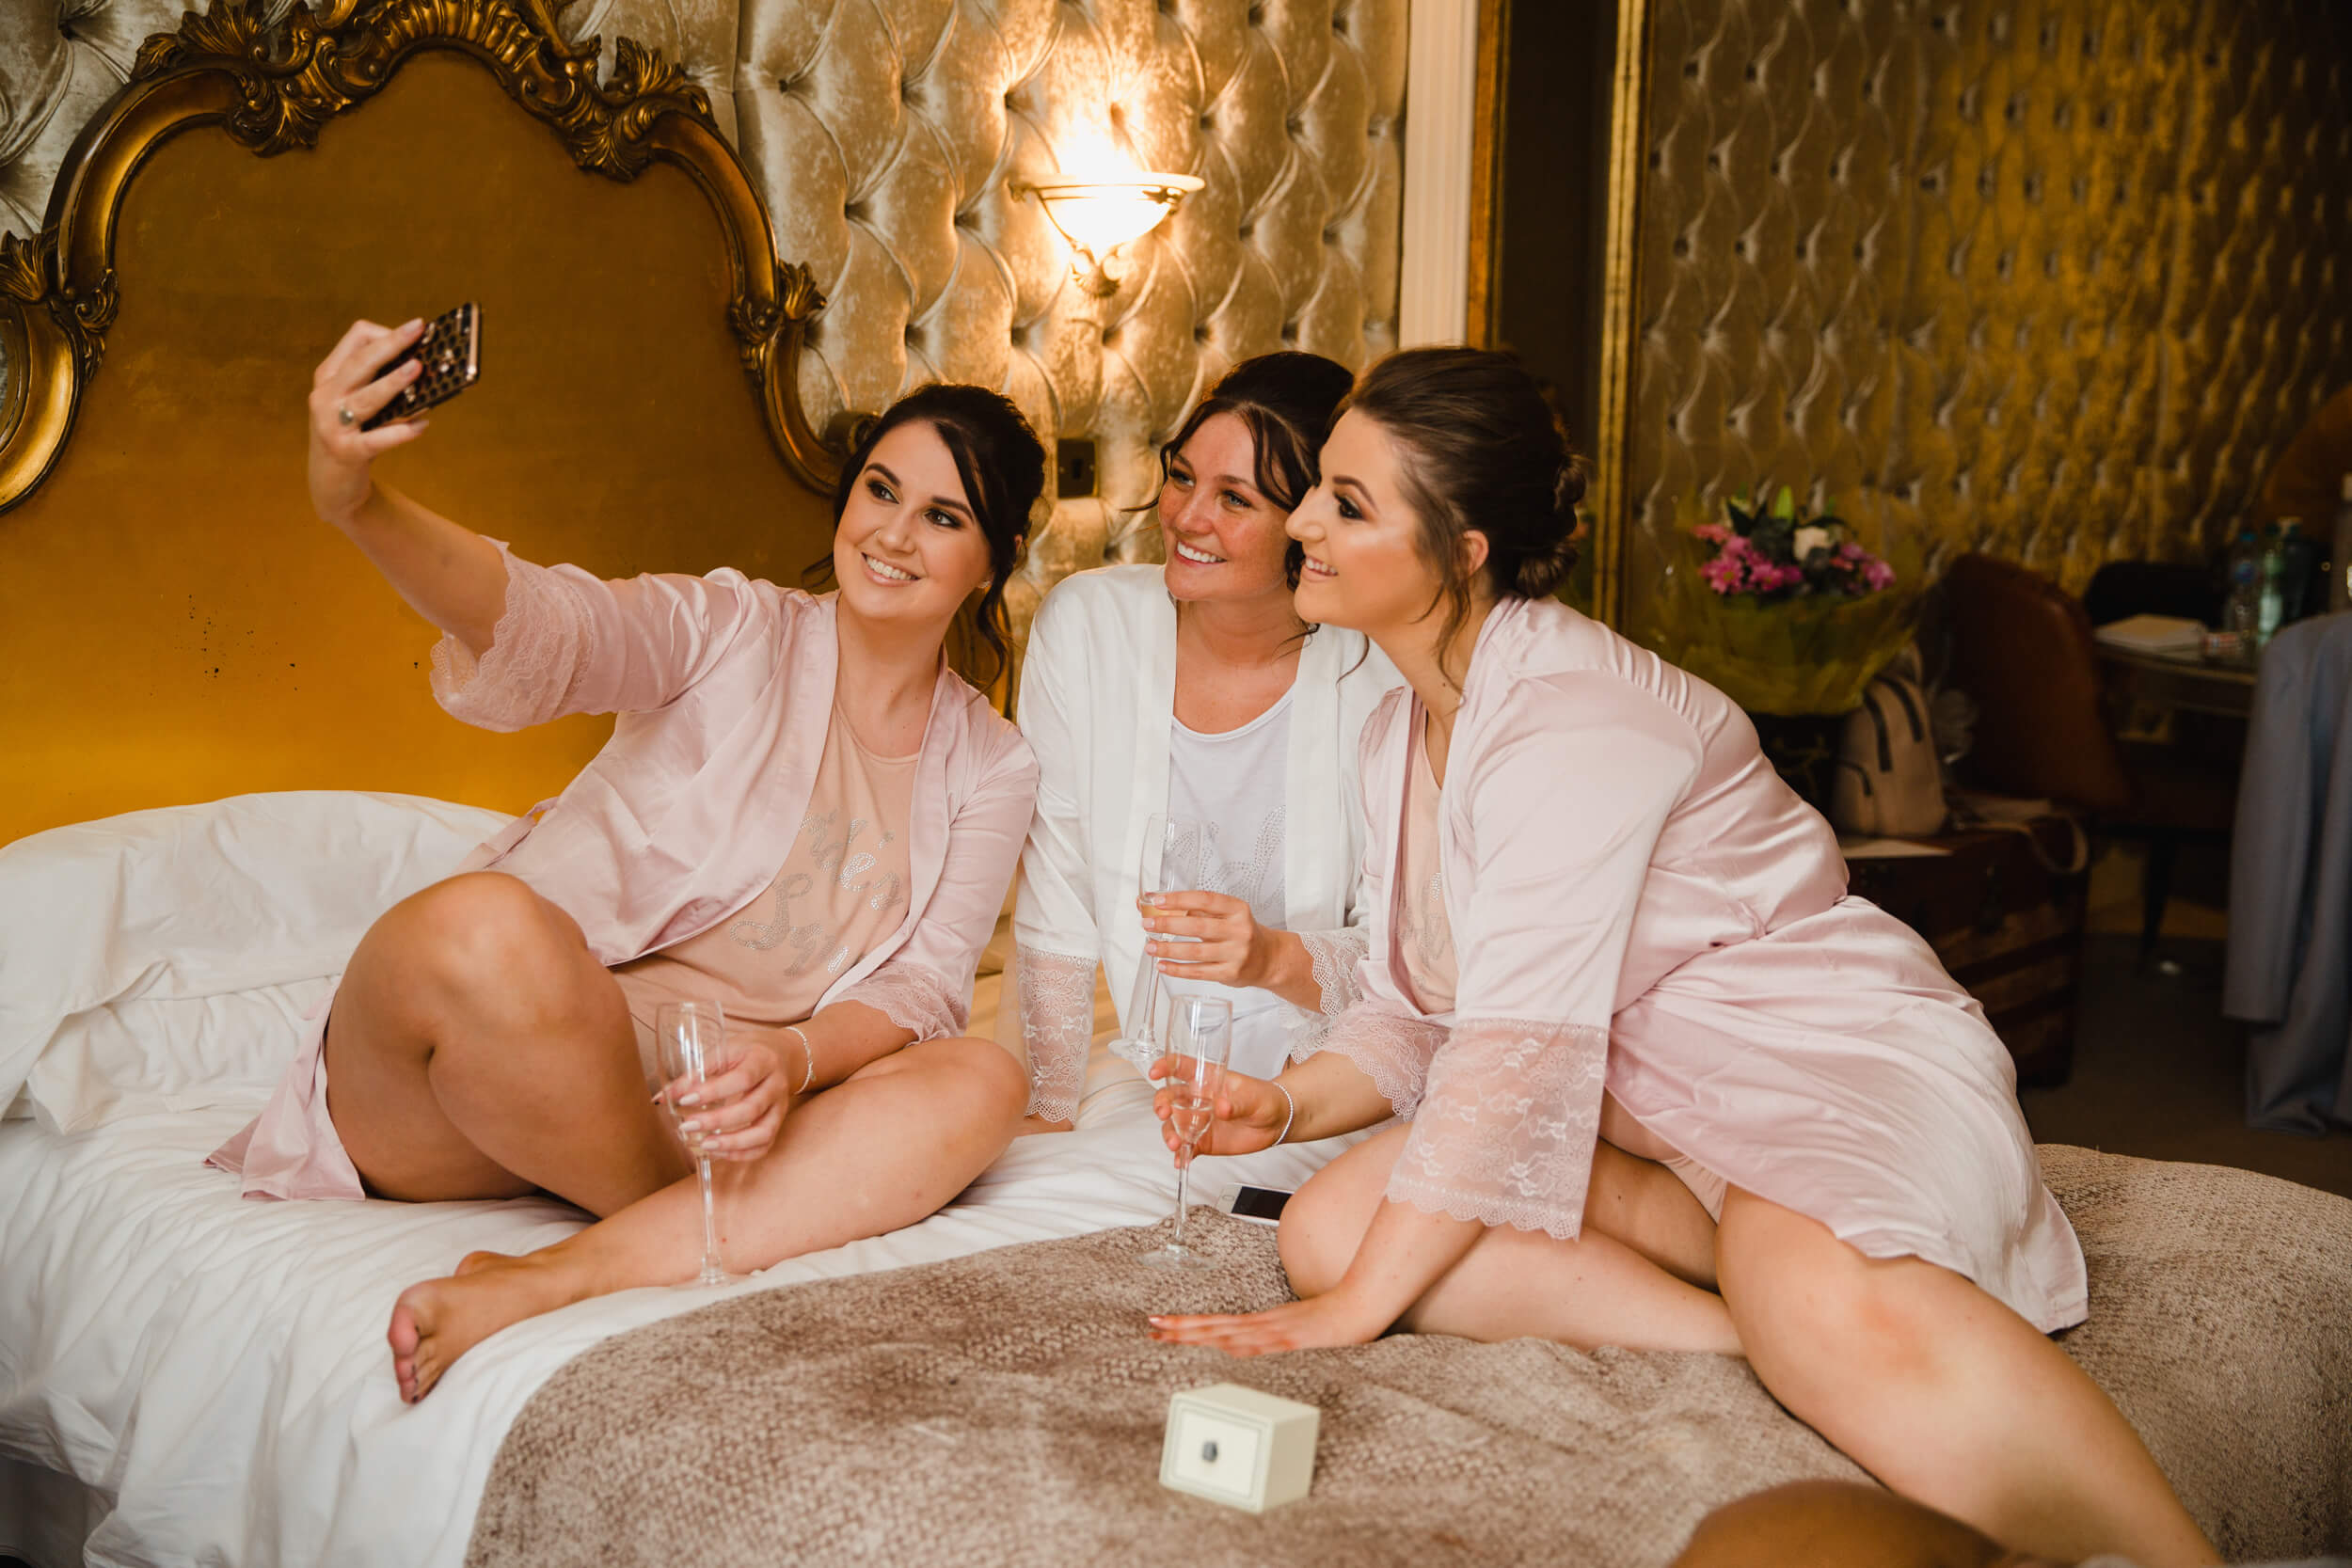 bridesmaids and bride taking phone camera photographs on bed